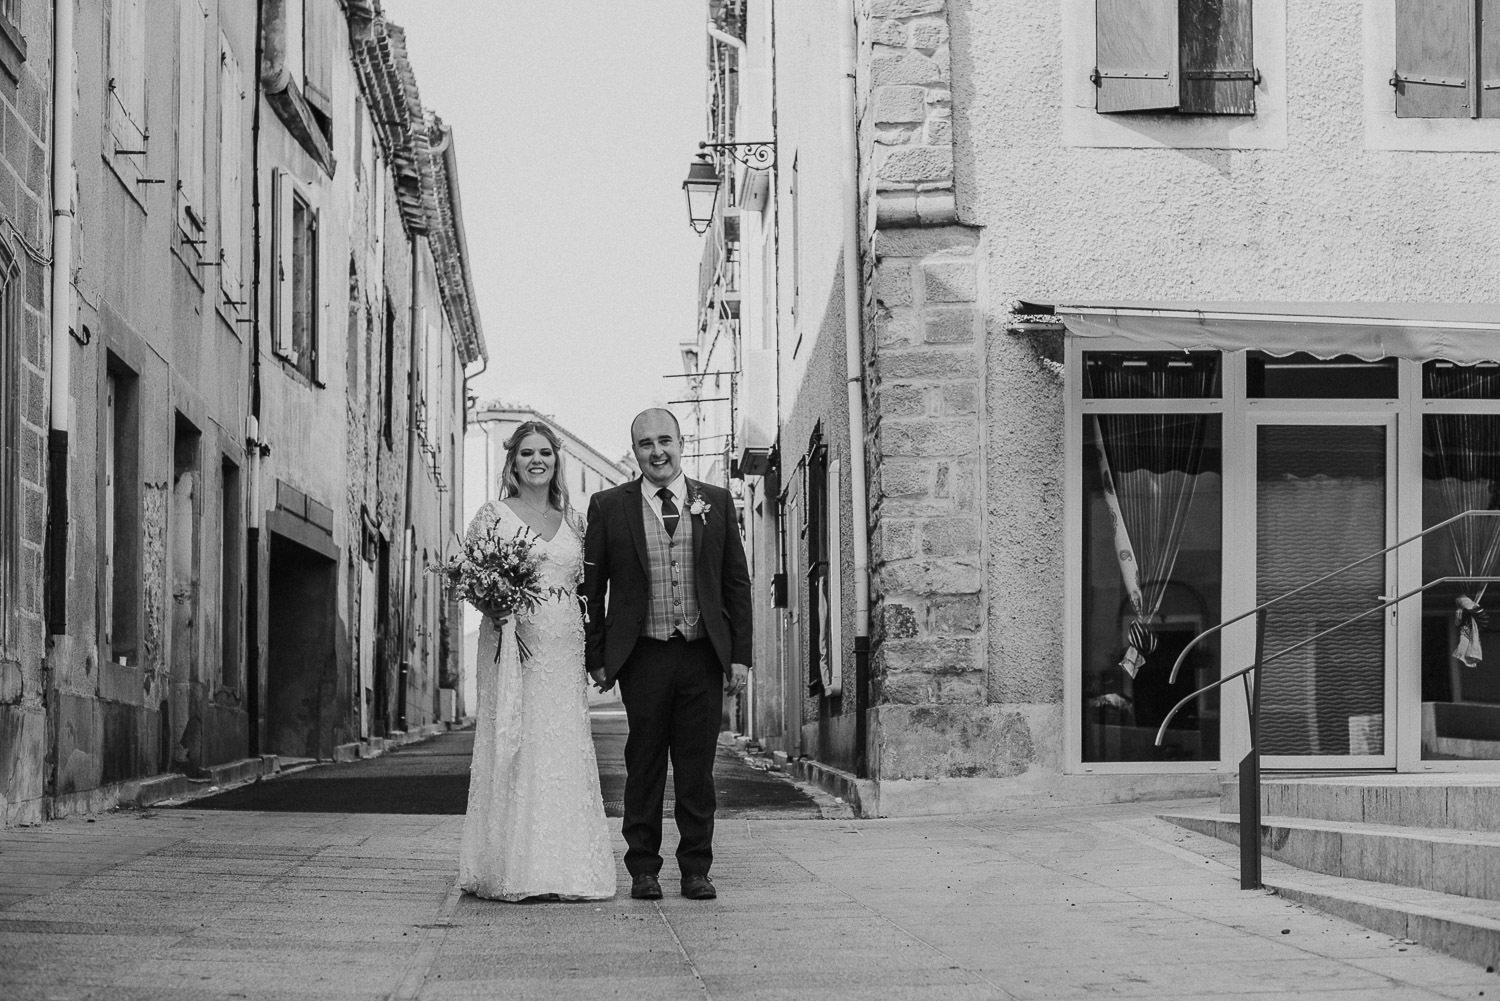 chateau_canet_carcassonne_wedding_katy_webb_photography_france_UK136